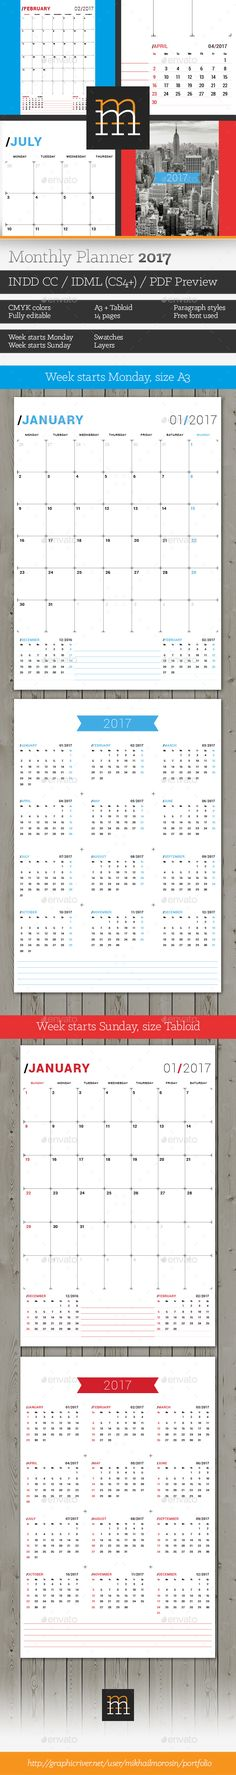 Indesign Calendar Template Create An Indesign Calendar With